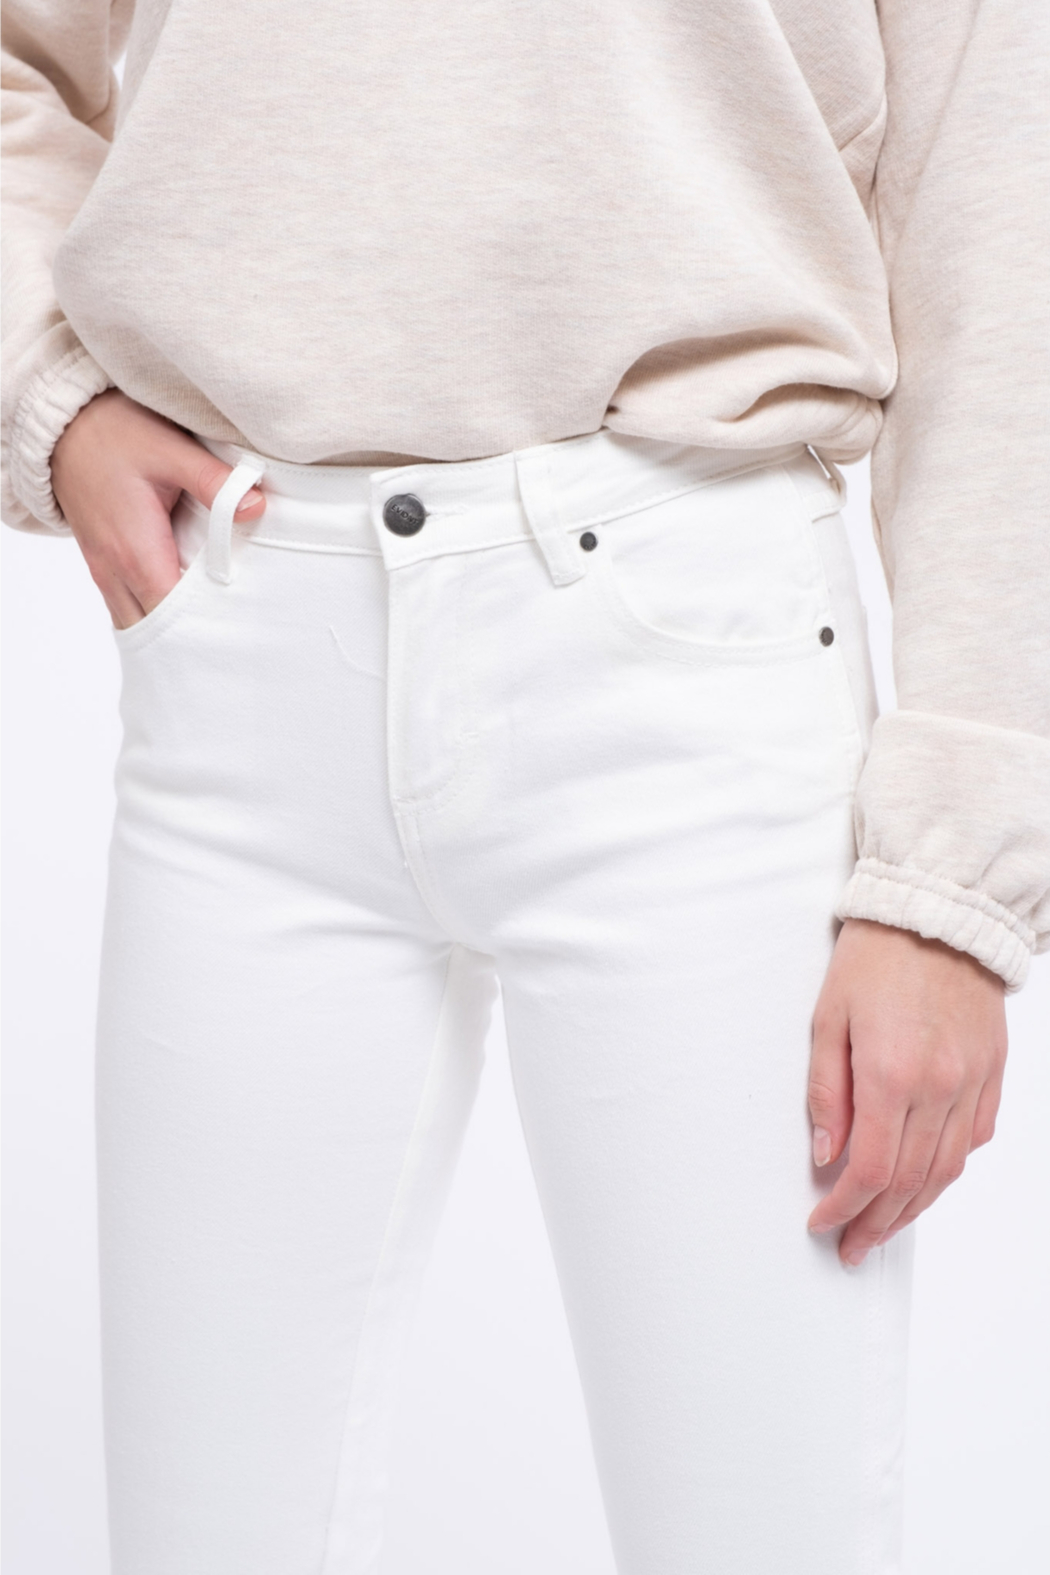 EVIDNT Off-White Cotton Low Rise Twisted Side Seam Skinny Jeans - Side Cropped Image